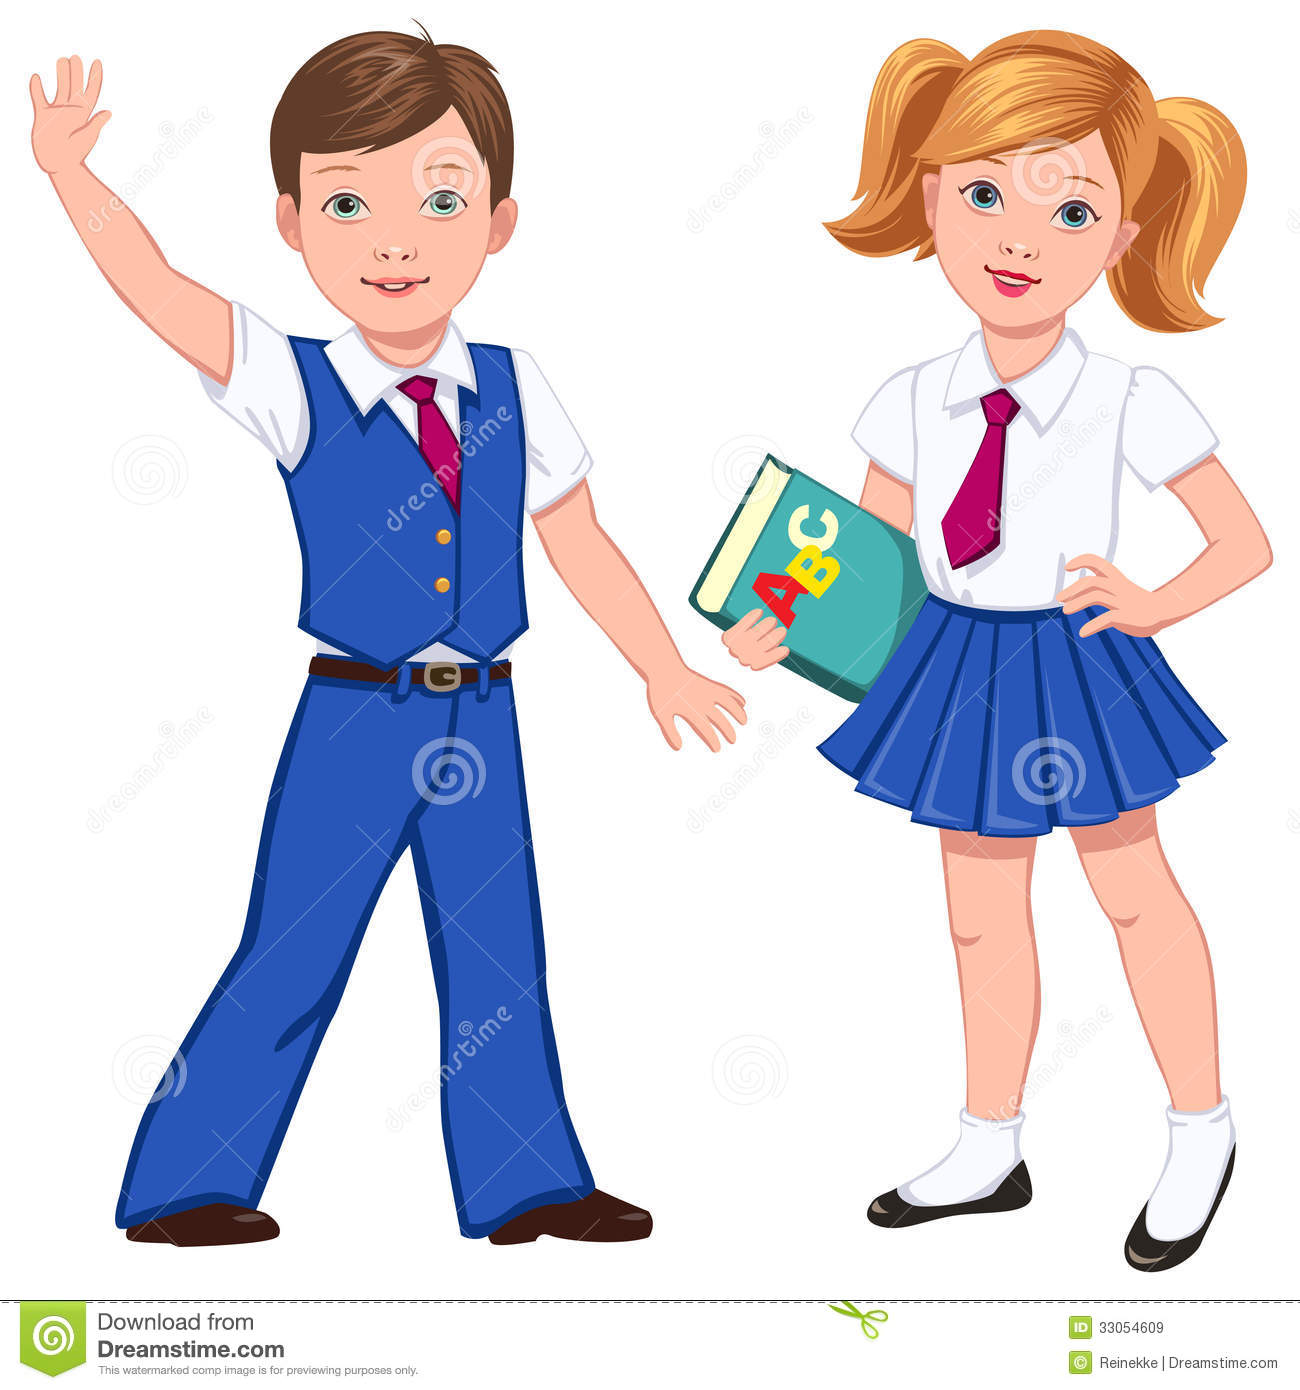 Clip Art Uniform Clipart uniform clipart kid pupils with book royalty free stock images image 33054609